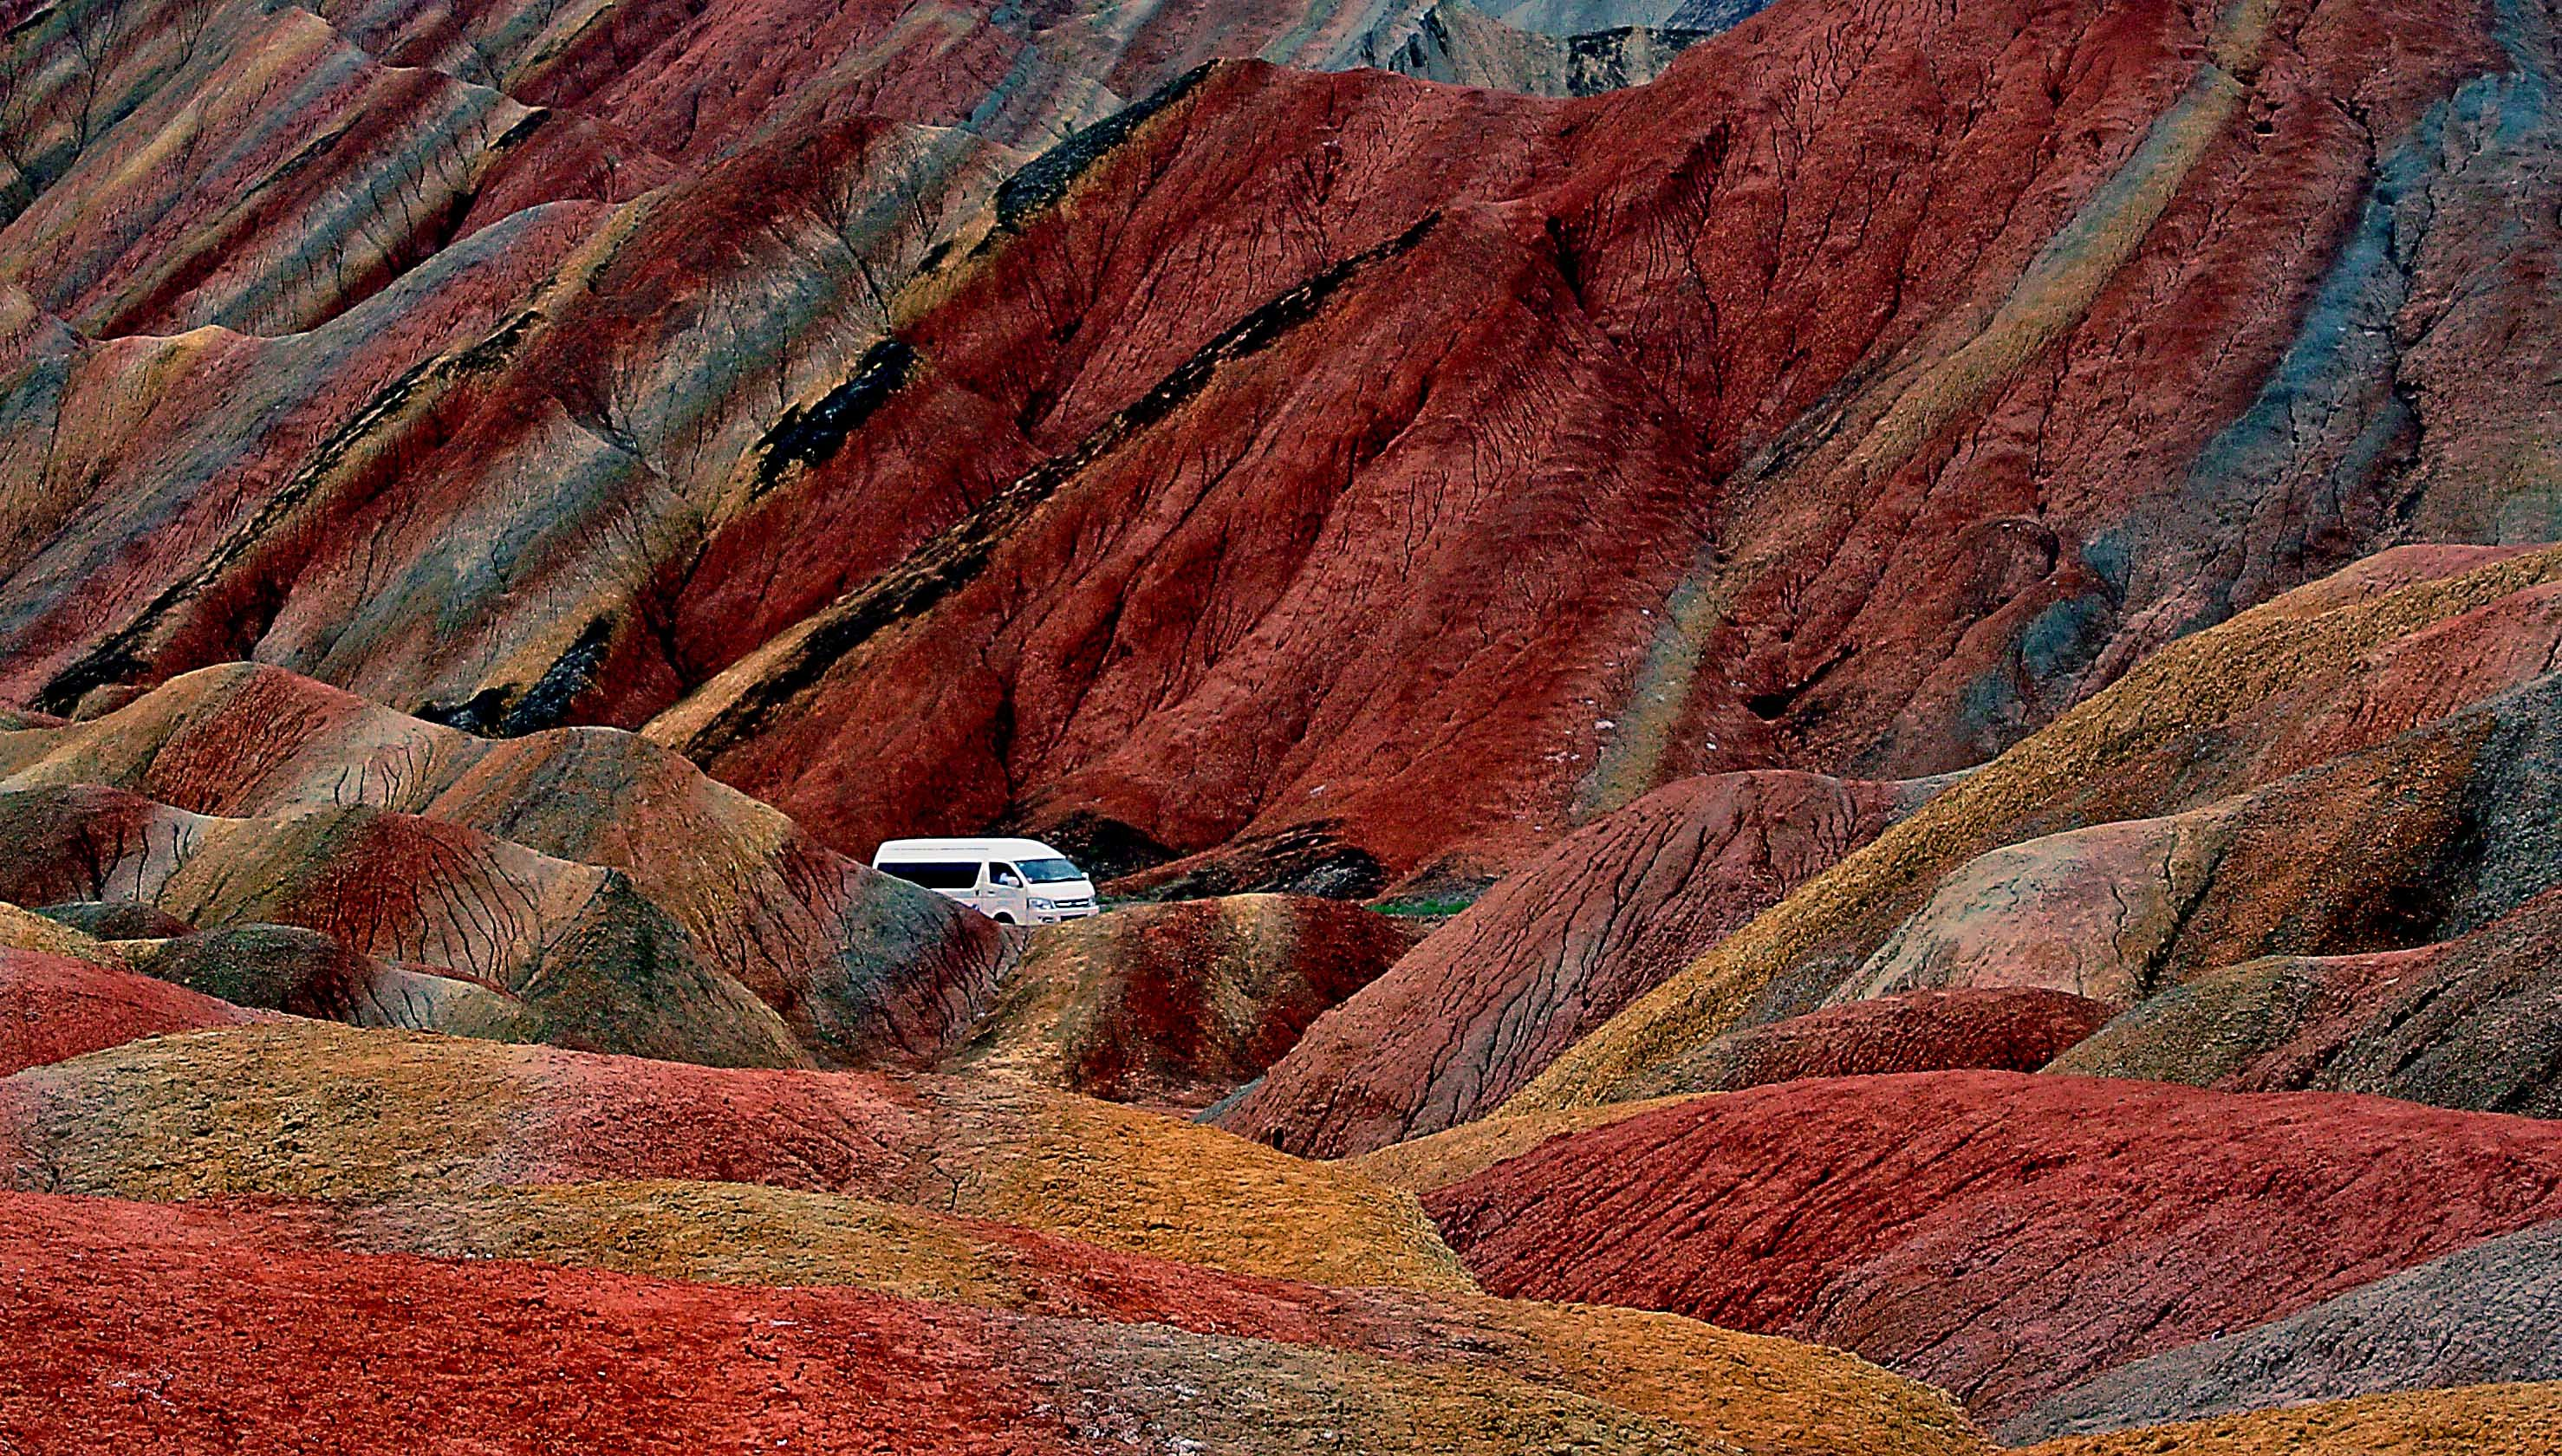 A minibus passes by the Danxia landform scenic area. Danxia, which means  rosy cloud , is a special landform formed from reddish sandstone that has been eroded over time into a series of mountains surrounded by curvaceous cliffs and many unusual rock formations, Zhangye City, Gansu Province, northwest China, July 7, 2014.